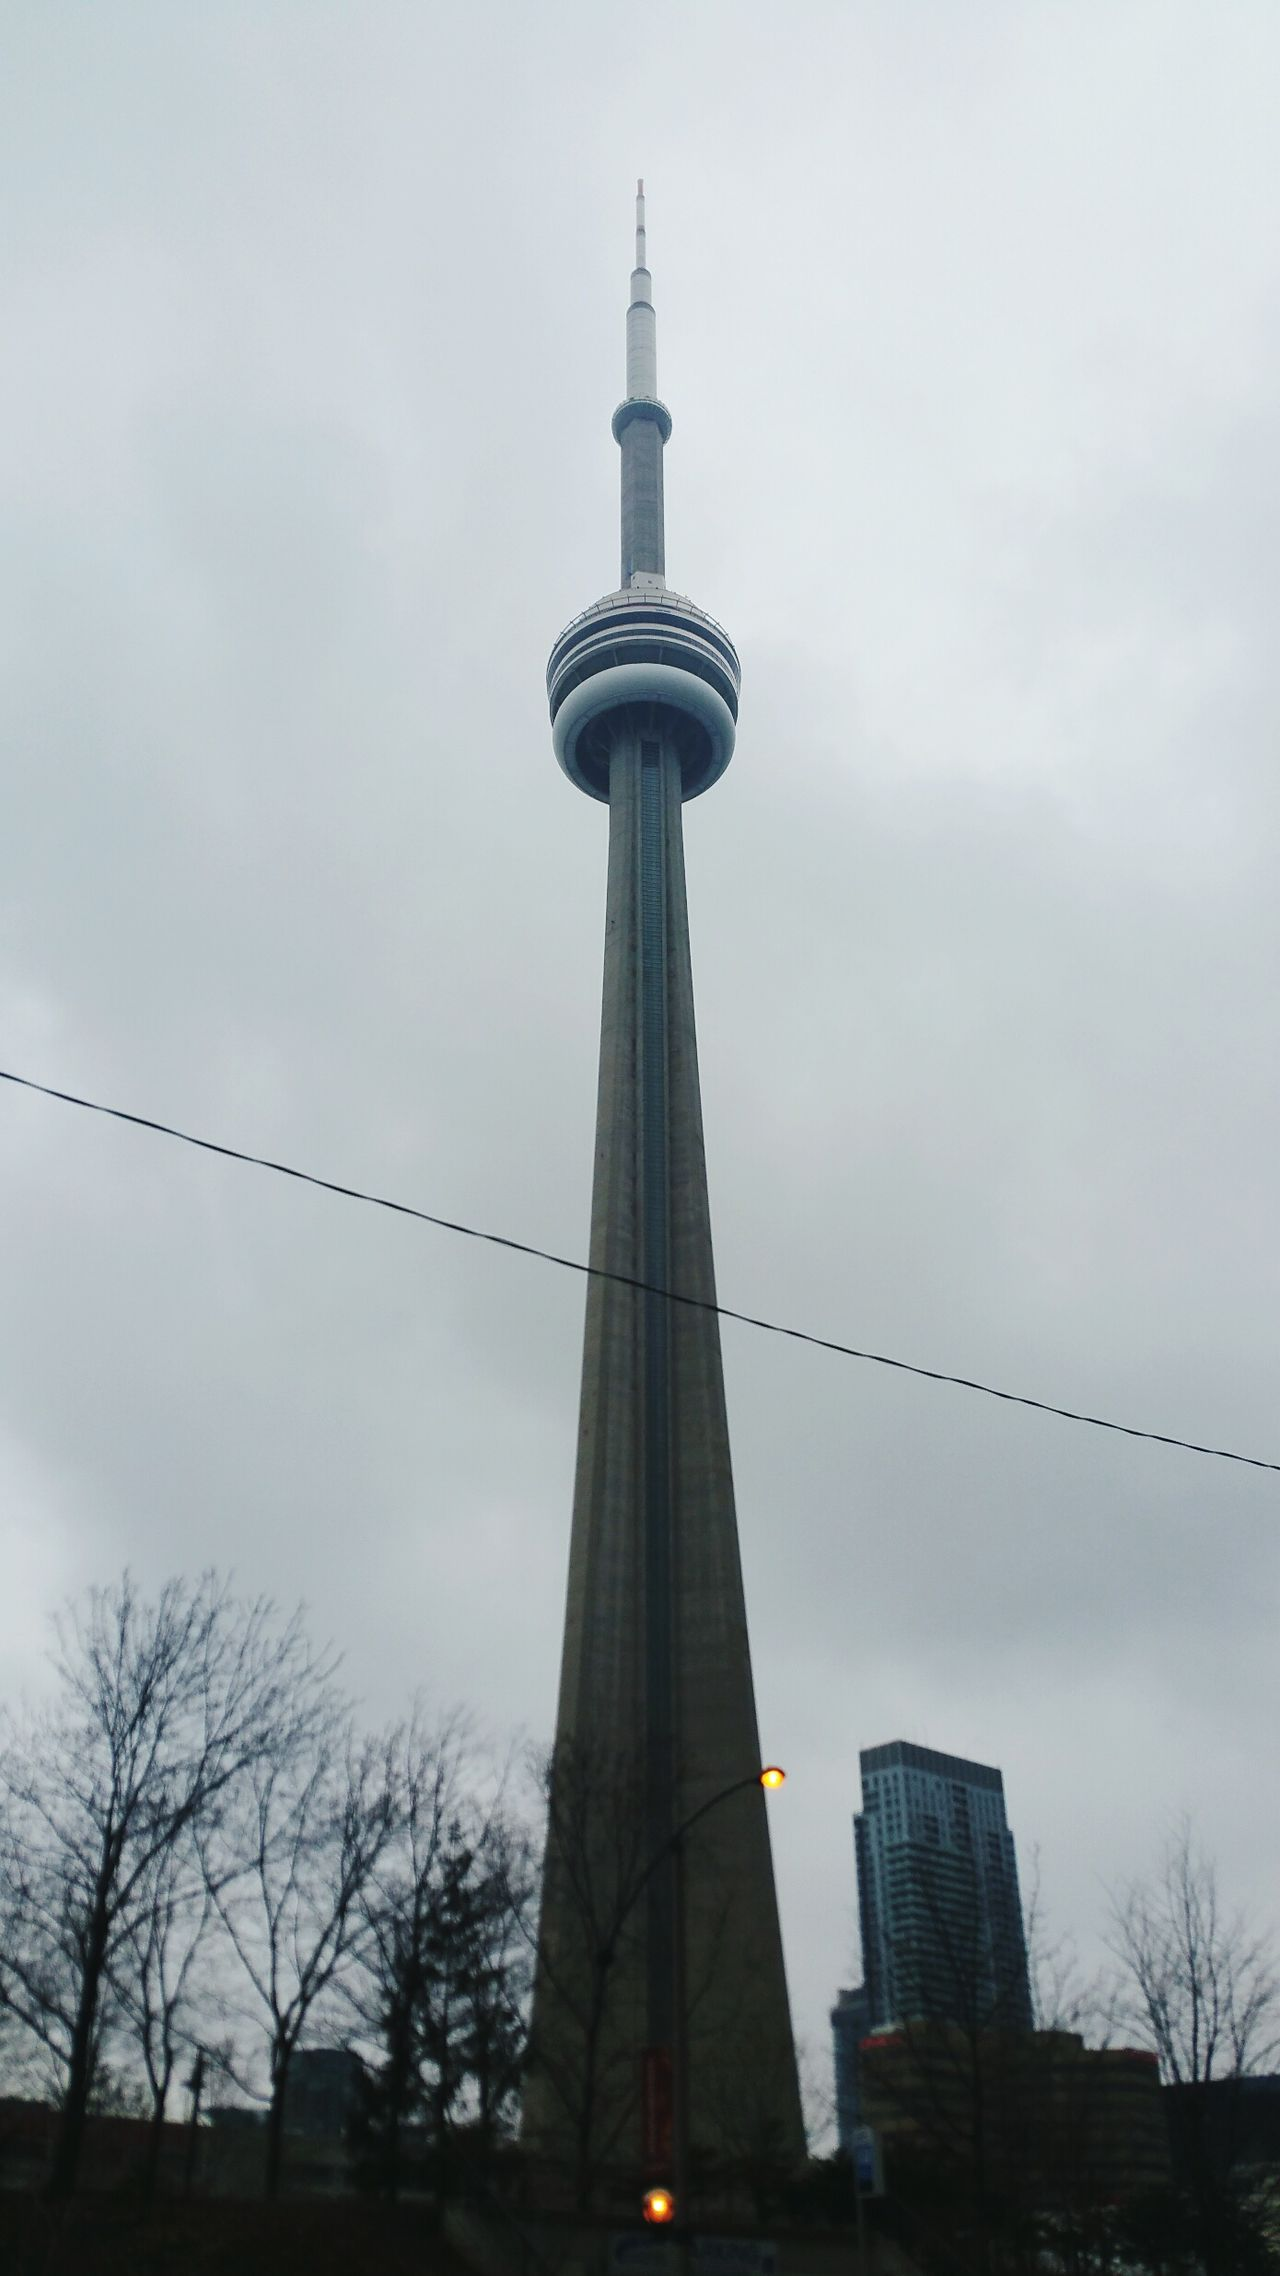 Cntower Tower City Sky Outdoors Fog Architecture Toronto CN Tower - Toronto High Buildings Urban Landscape Foggy Weather Weather Foggy Morning Winter Evening Gloomy Weather